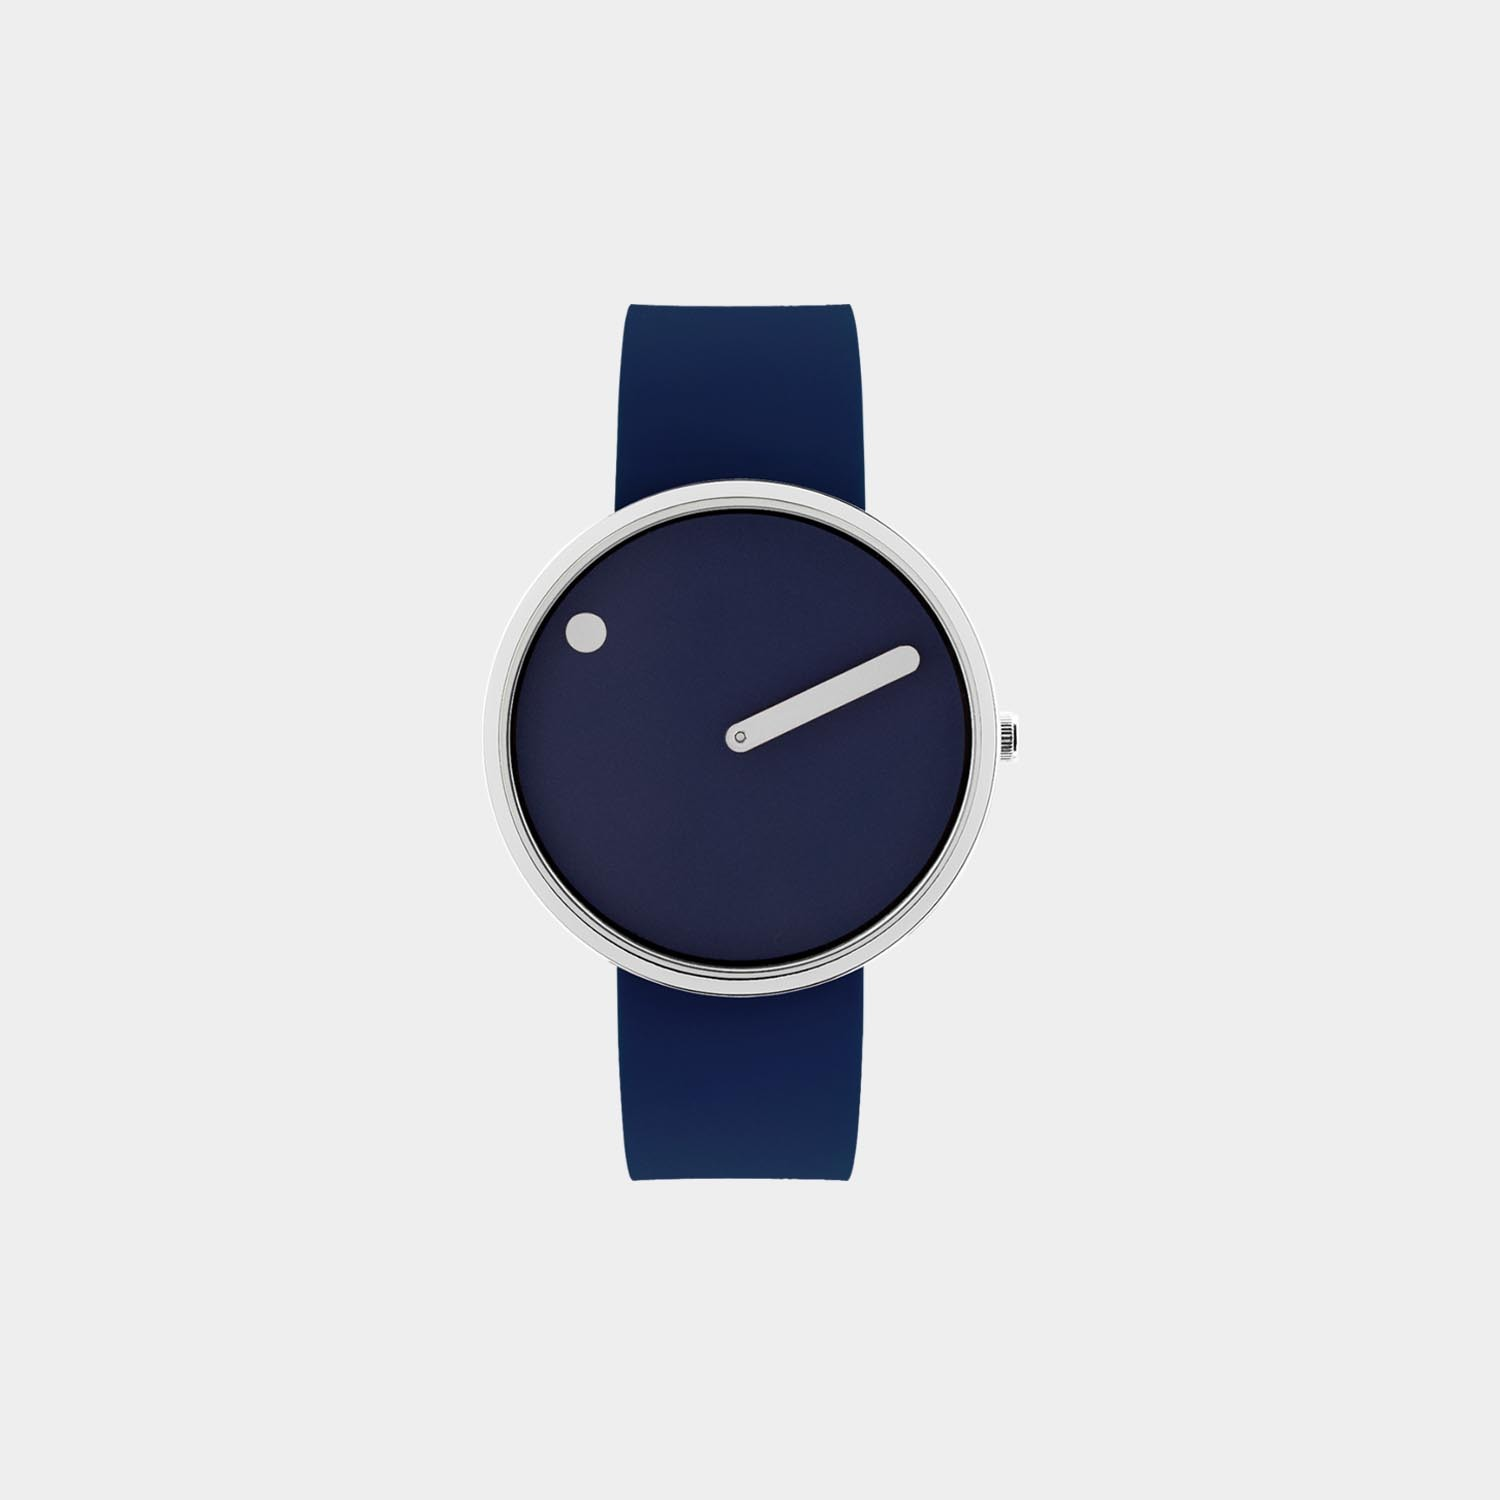 PICTO® Watch 40mm Navy Blue / Polished Steel